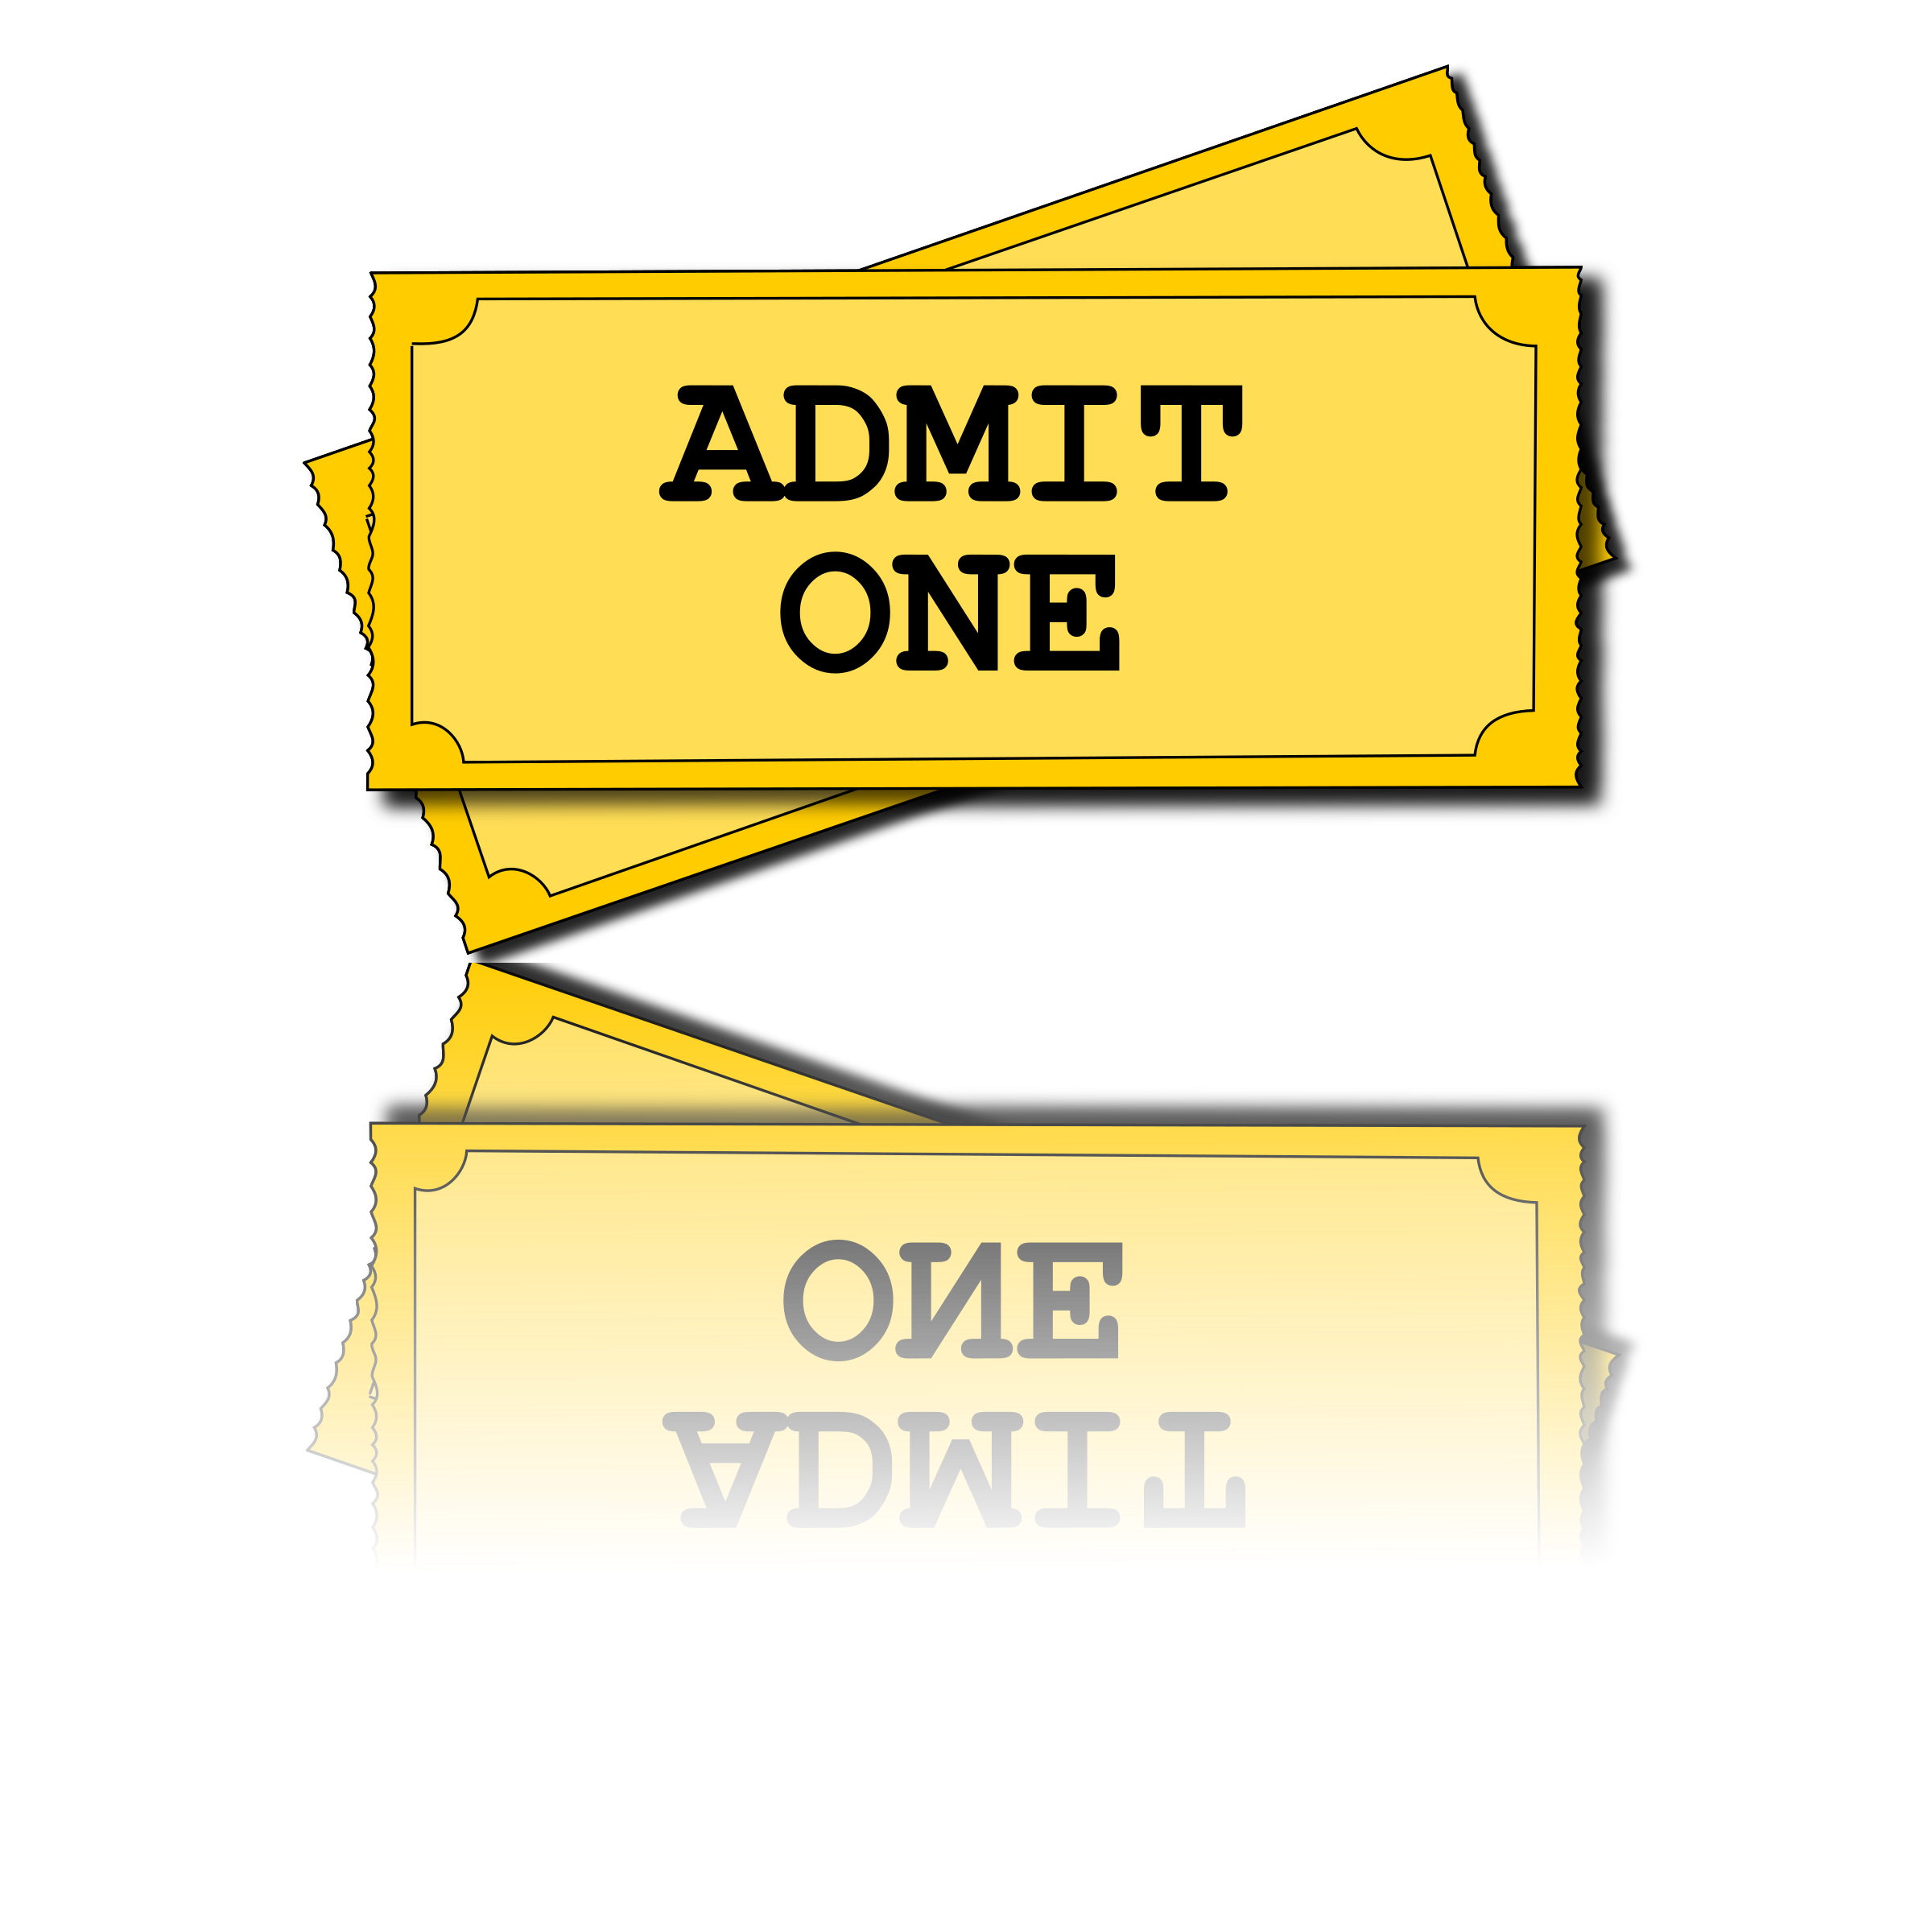 Tickets clipart movie ticket. Frames illustrations hd images